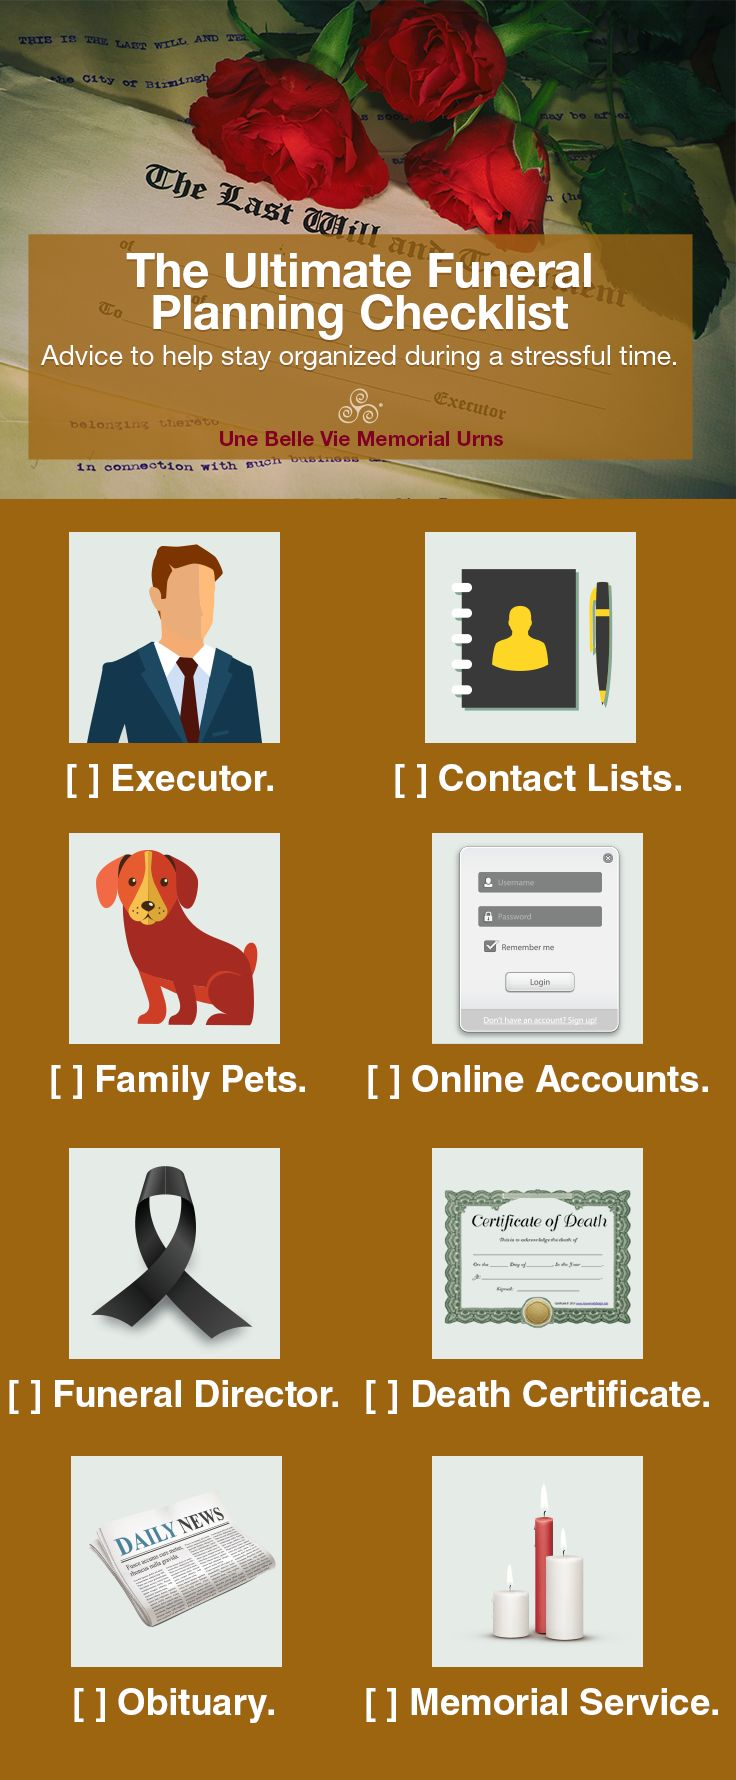 Best 193 funeral images on pinterest funeral homes funeral funeral planning checklist take a look at this article that provides a thorough look at izmirmasajfo